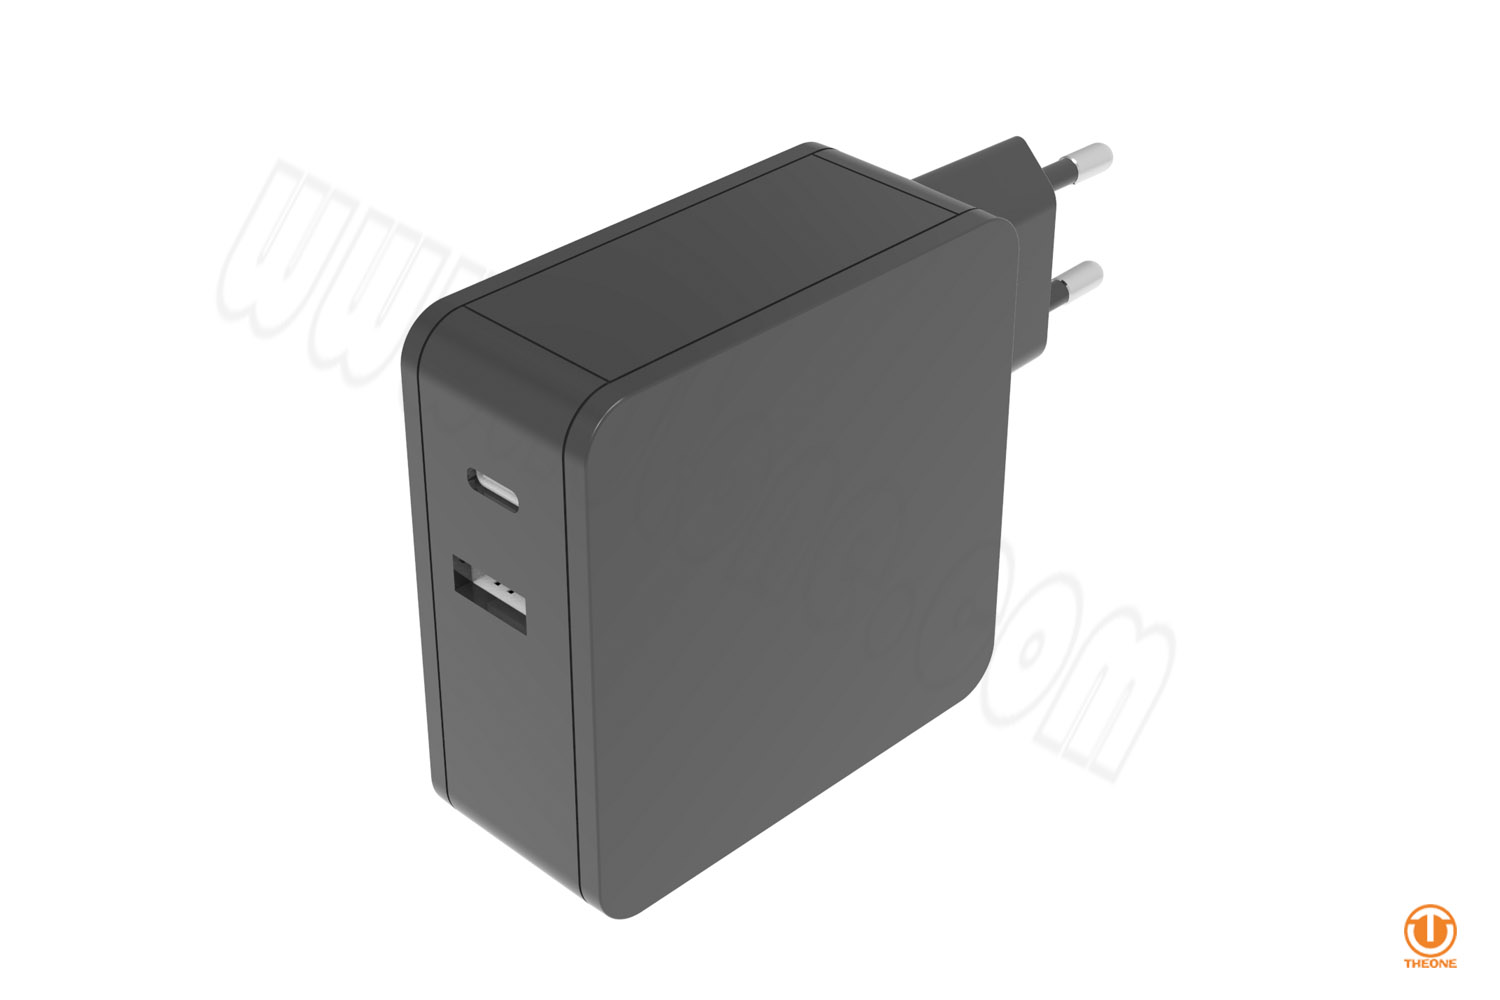 tp601ca-4 typec charger